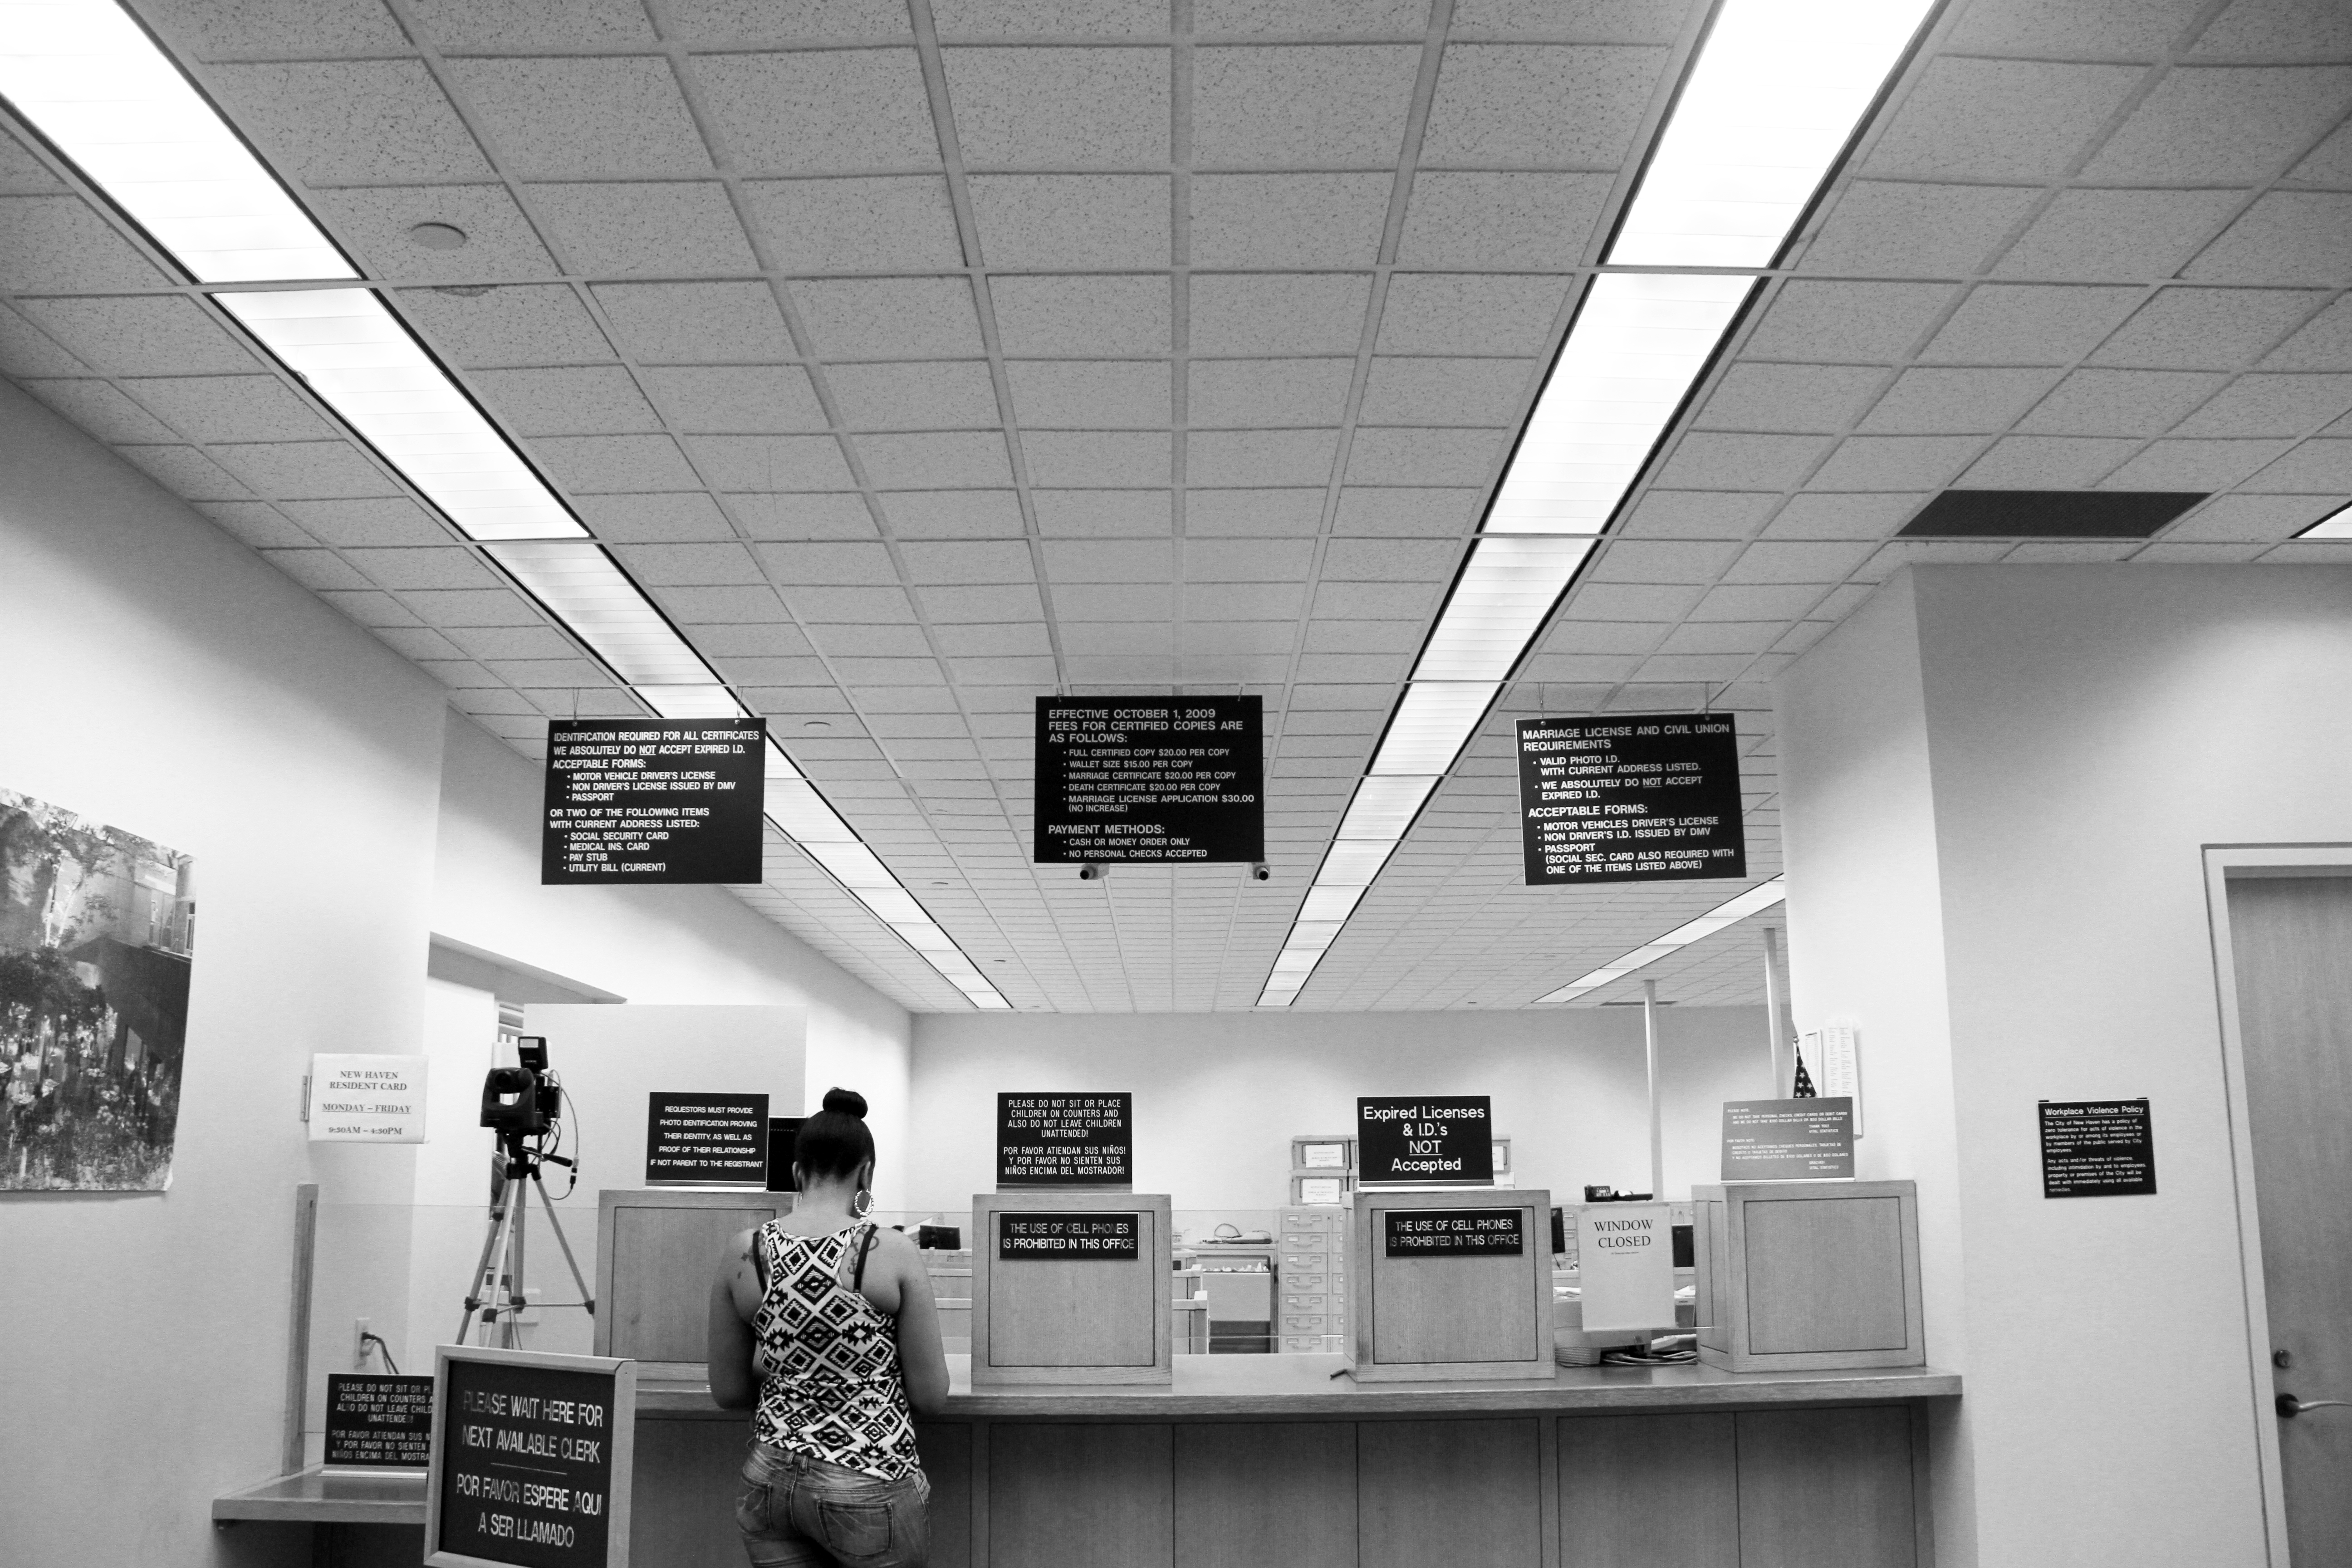 Under New Haven's municipal ID law, residents can apply for an ID at the Office of Vital Statistics at City Hall without proof of immigration status.